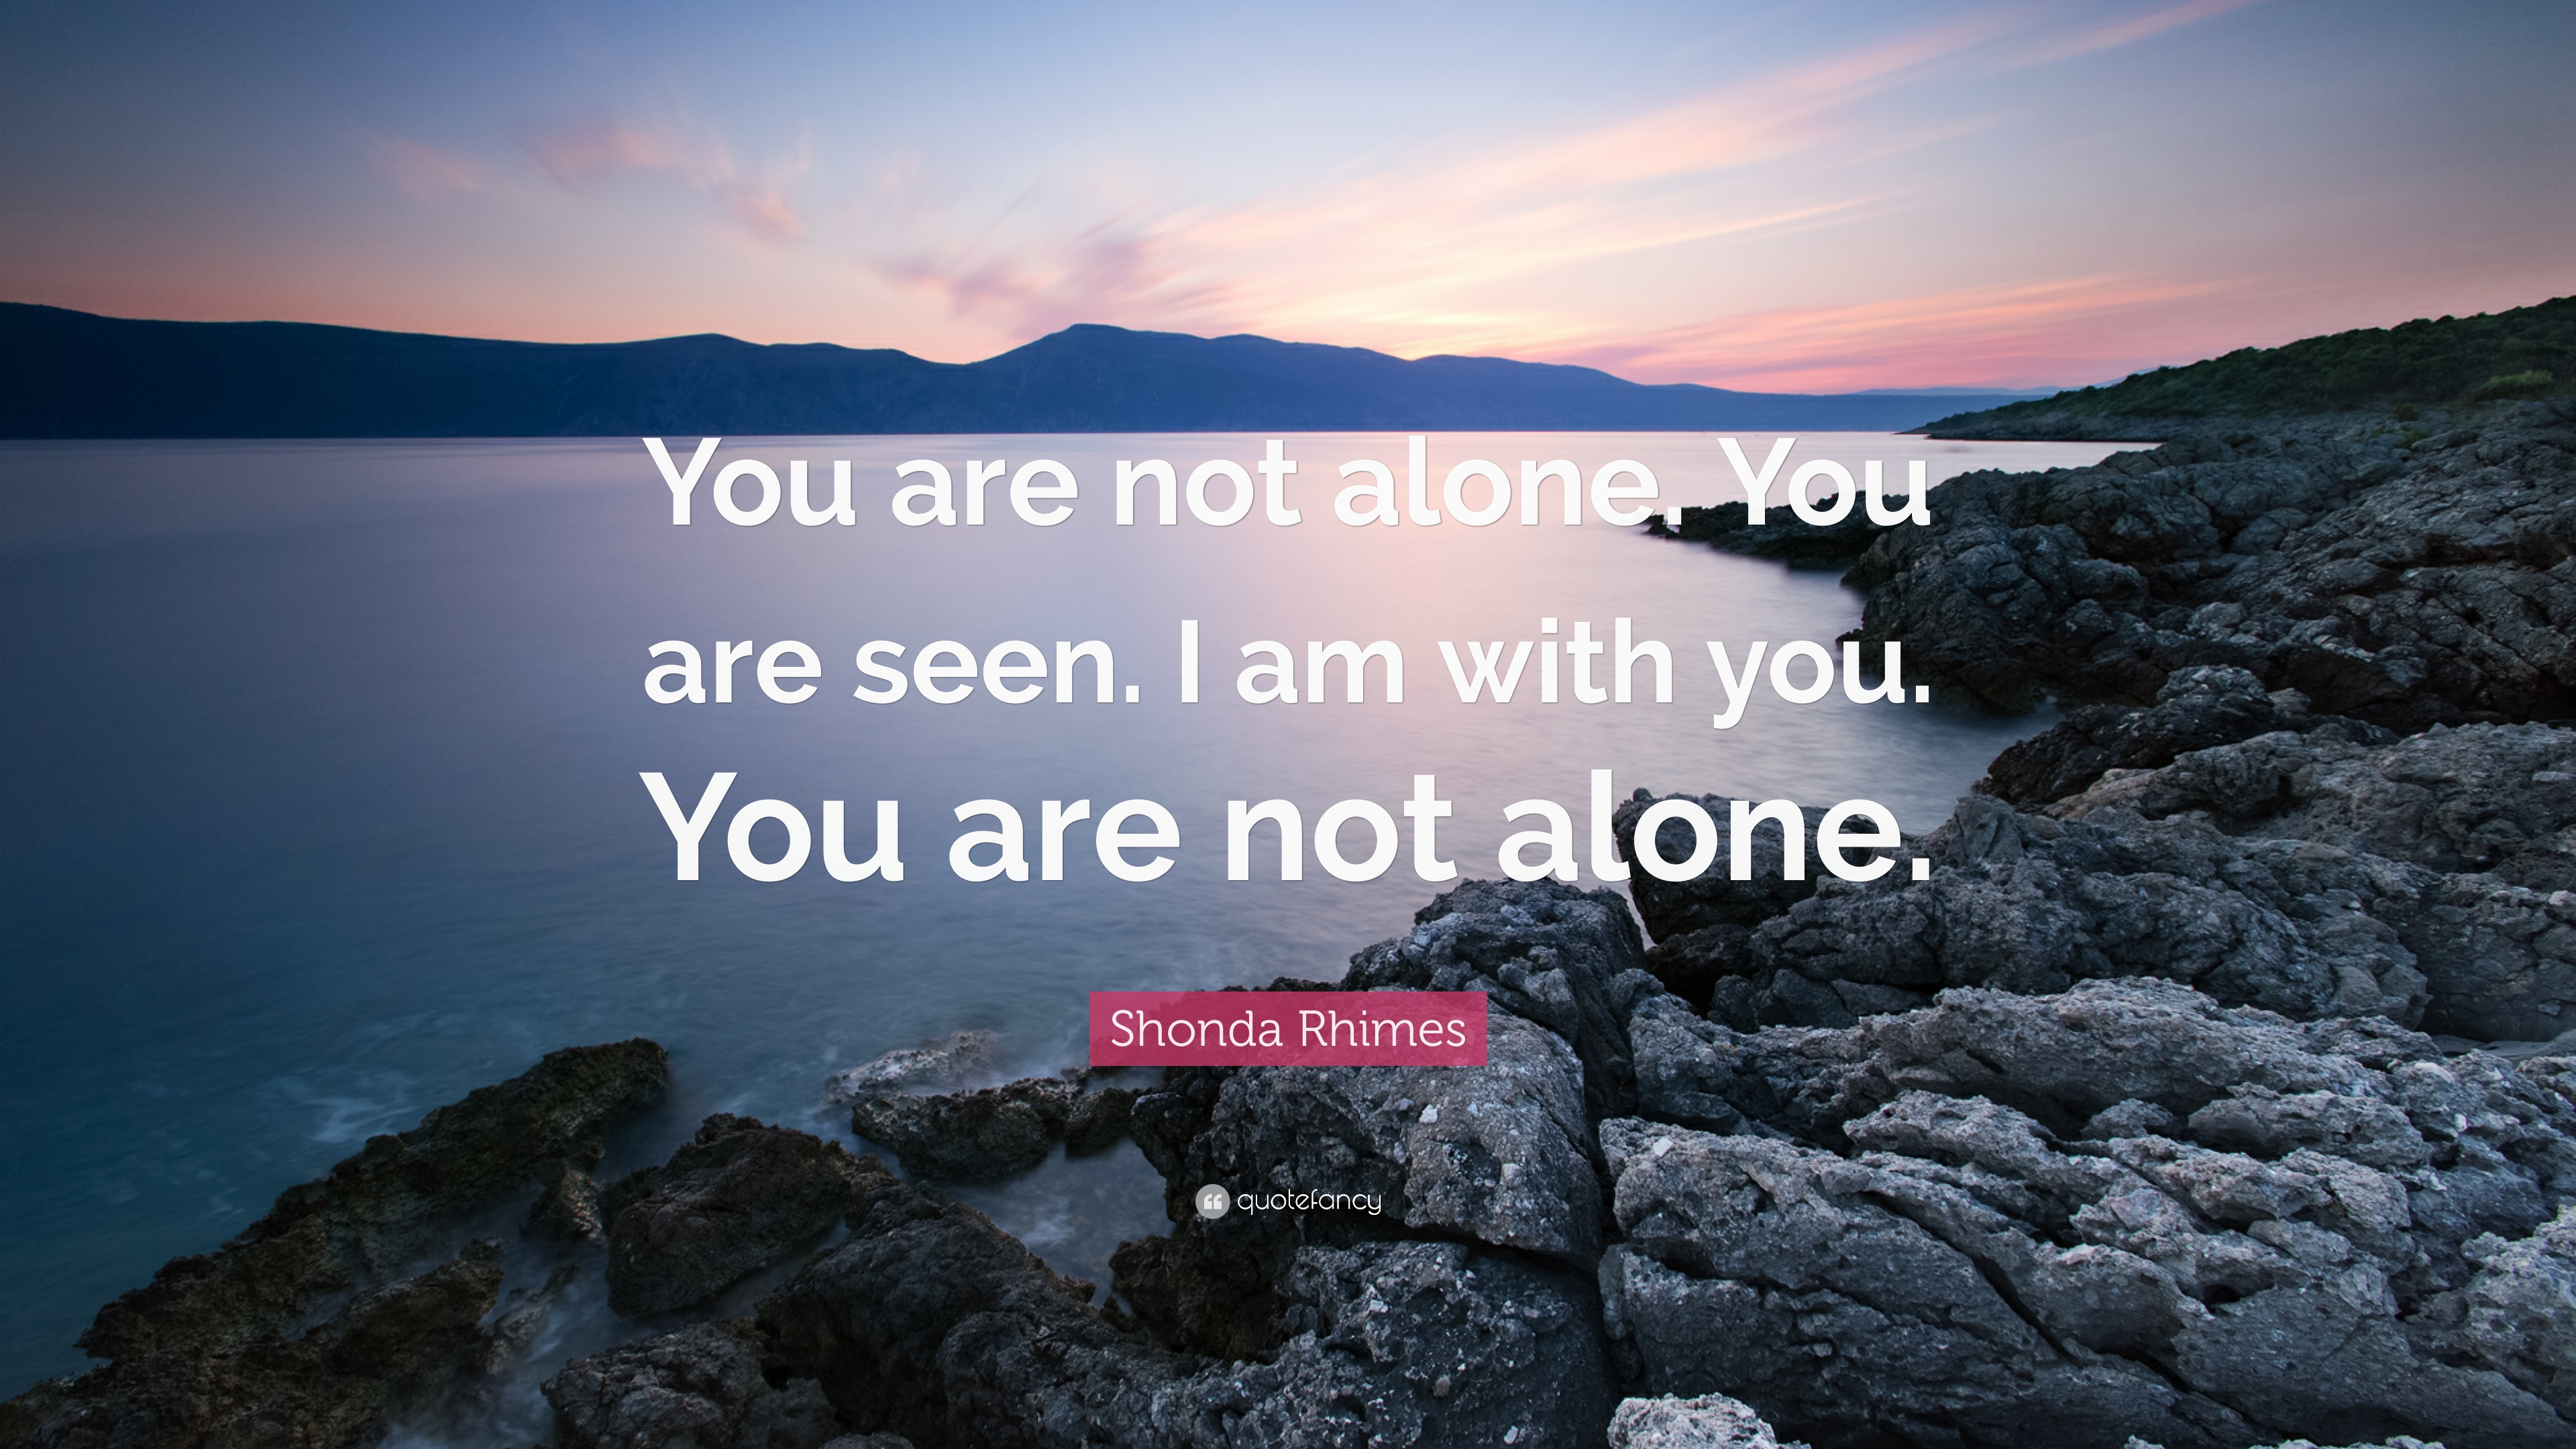 Shonda Rhimes Quote You Are Not Alone You Are Seen I Am With You